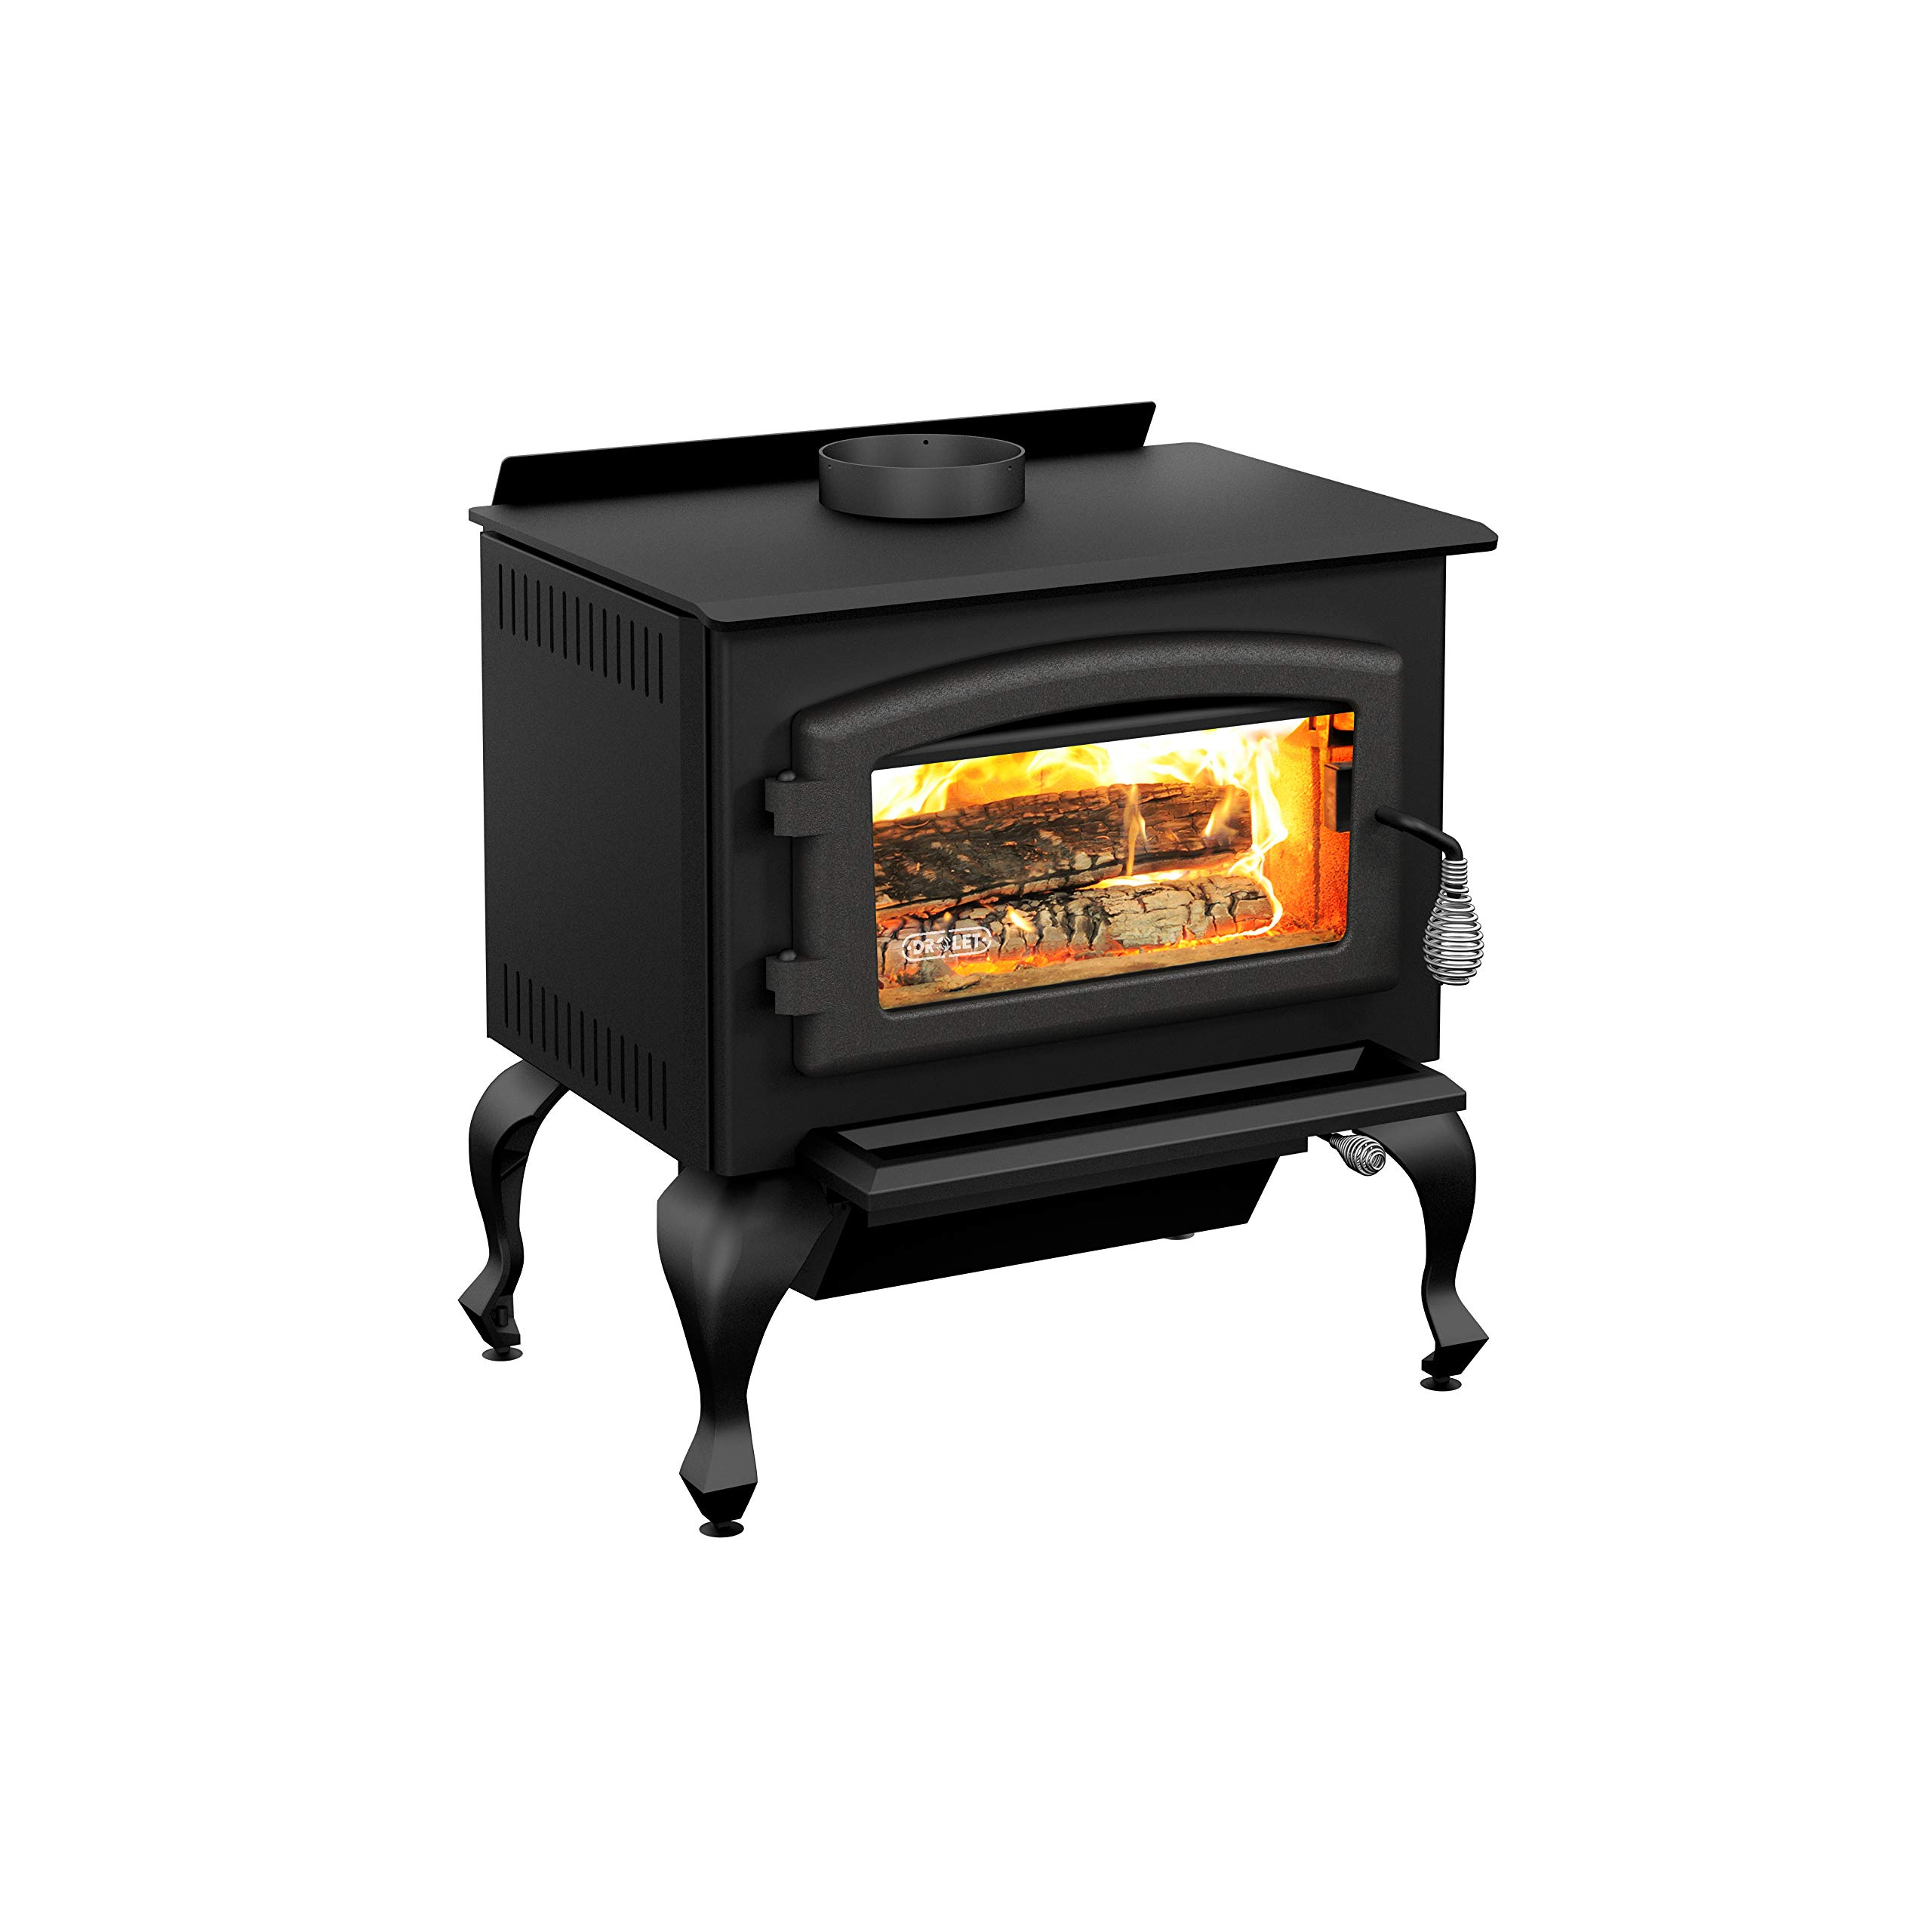 Drolet Columbia EPA High Efficiency Wood Stove DB03015 by Drolet